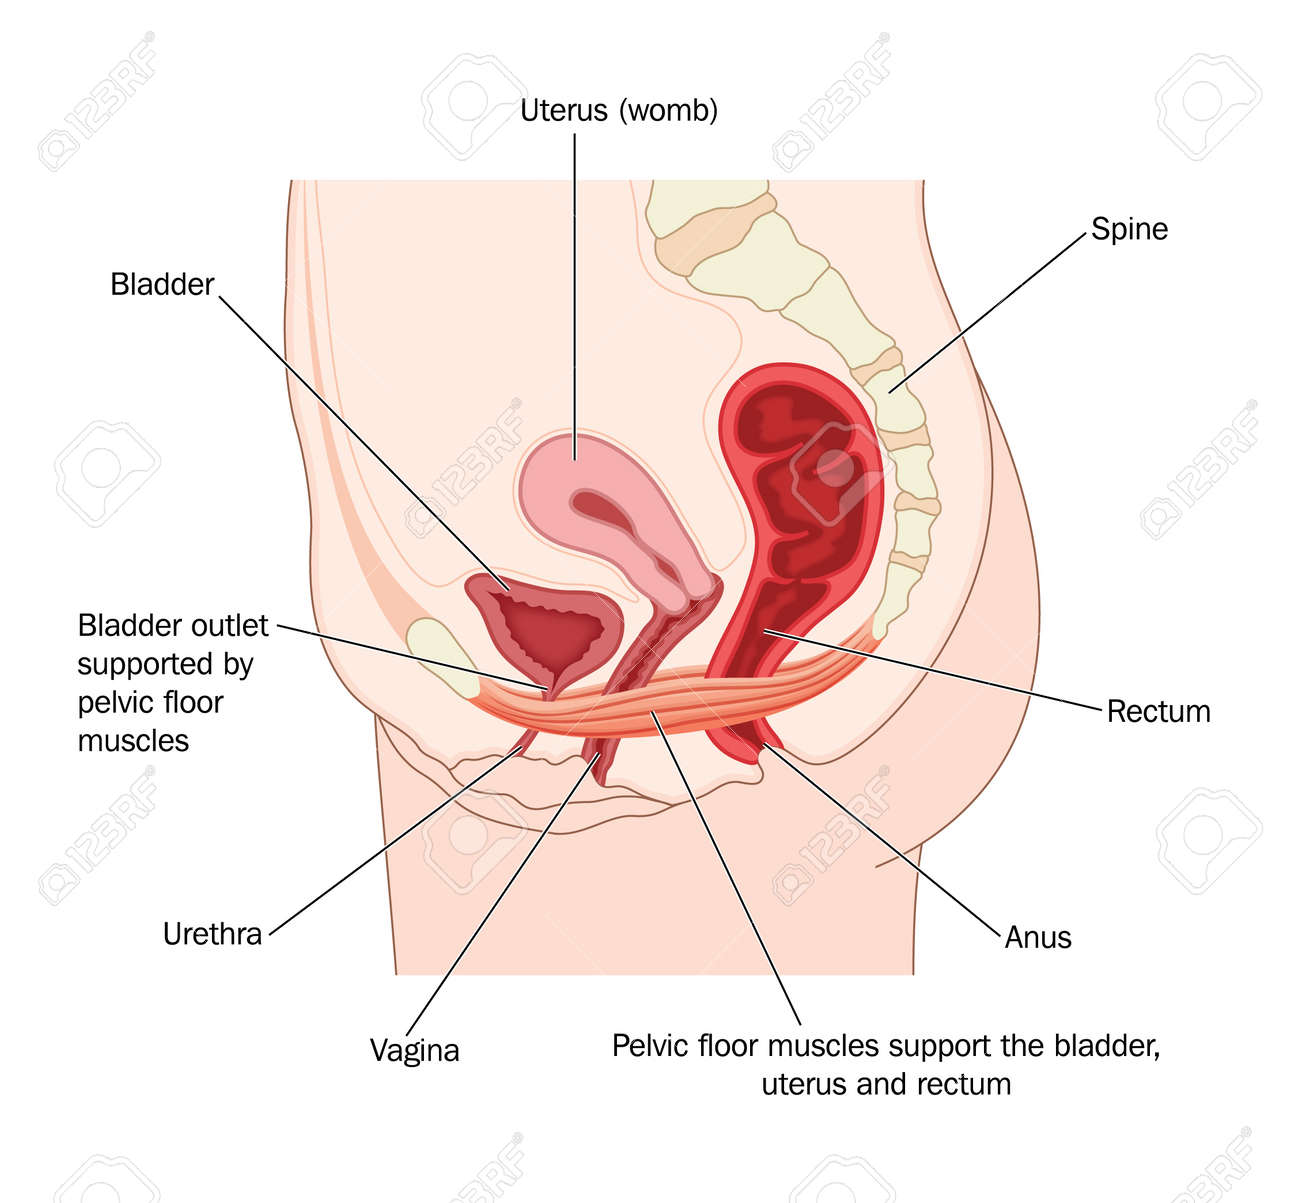 Drawing To Show The Pelvic Floor Muscles And Their Support Of